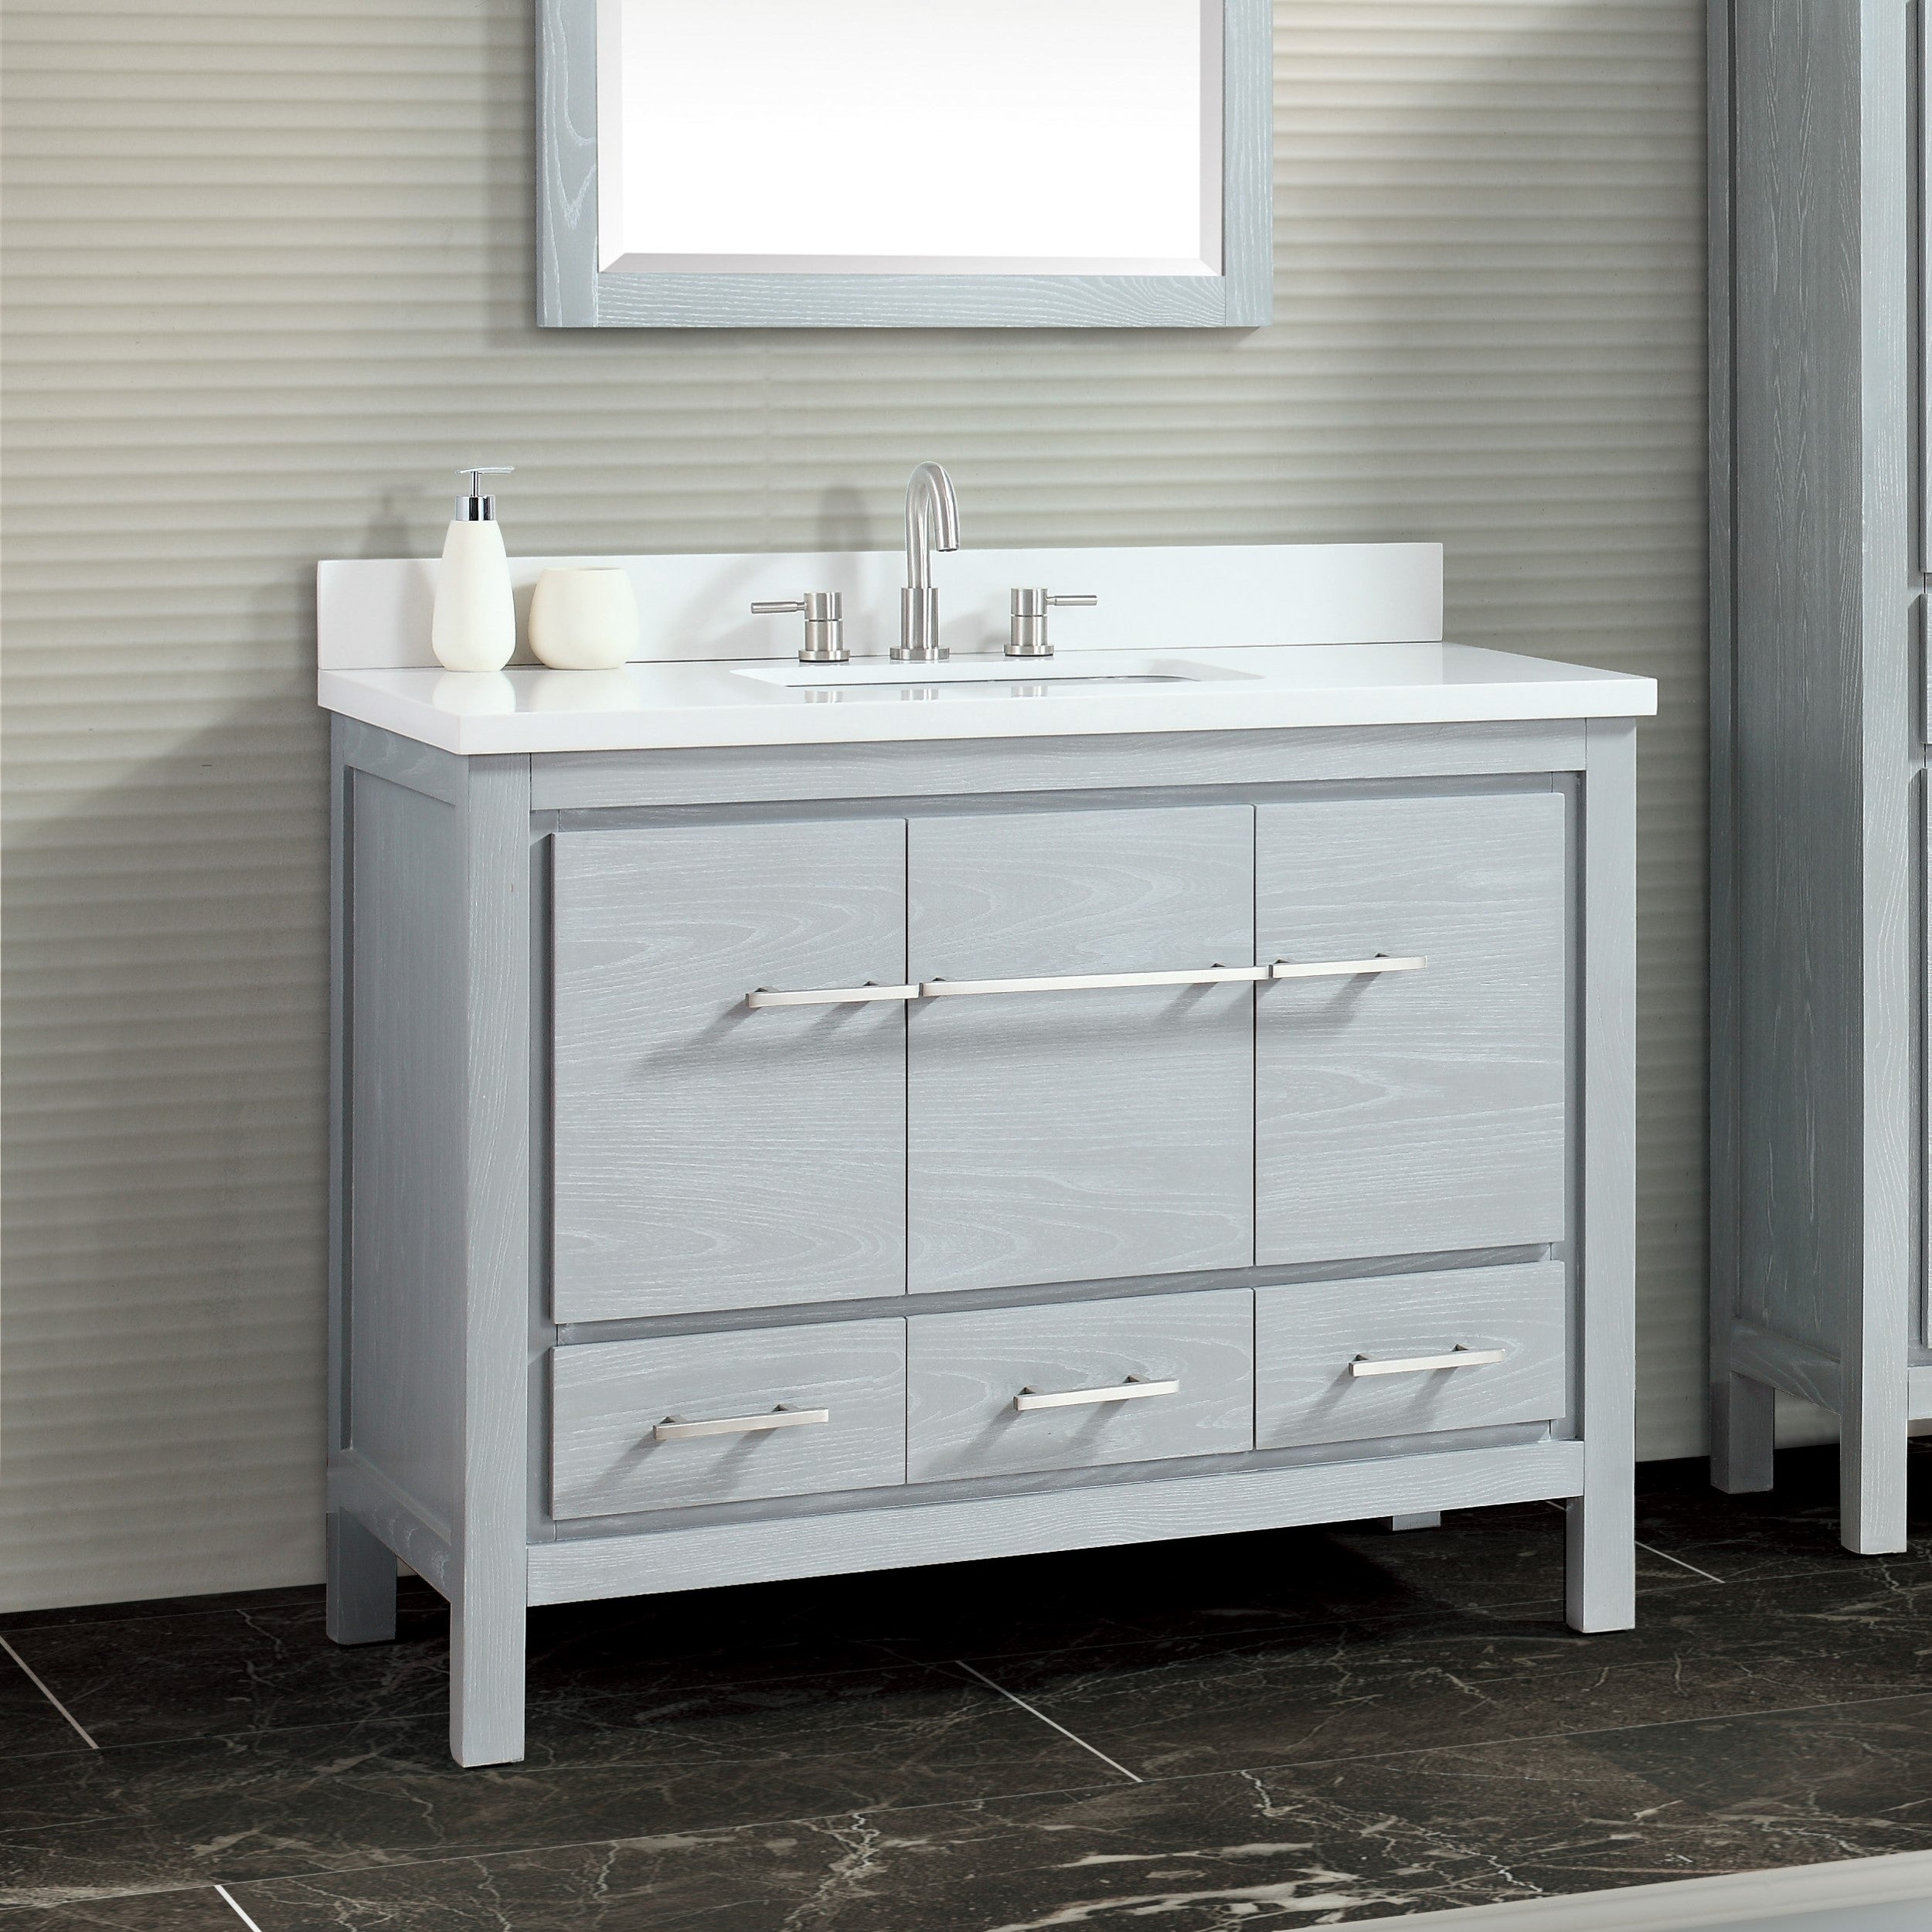 Azzuri Riley 43 In Bathroom Vanity With Quartz Top And Sink Overstock 20351855